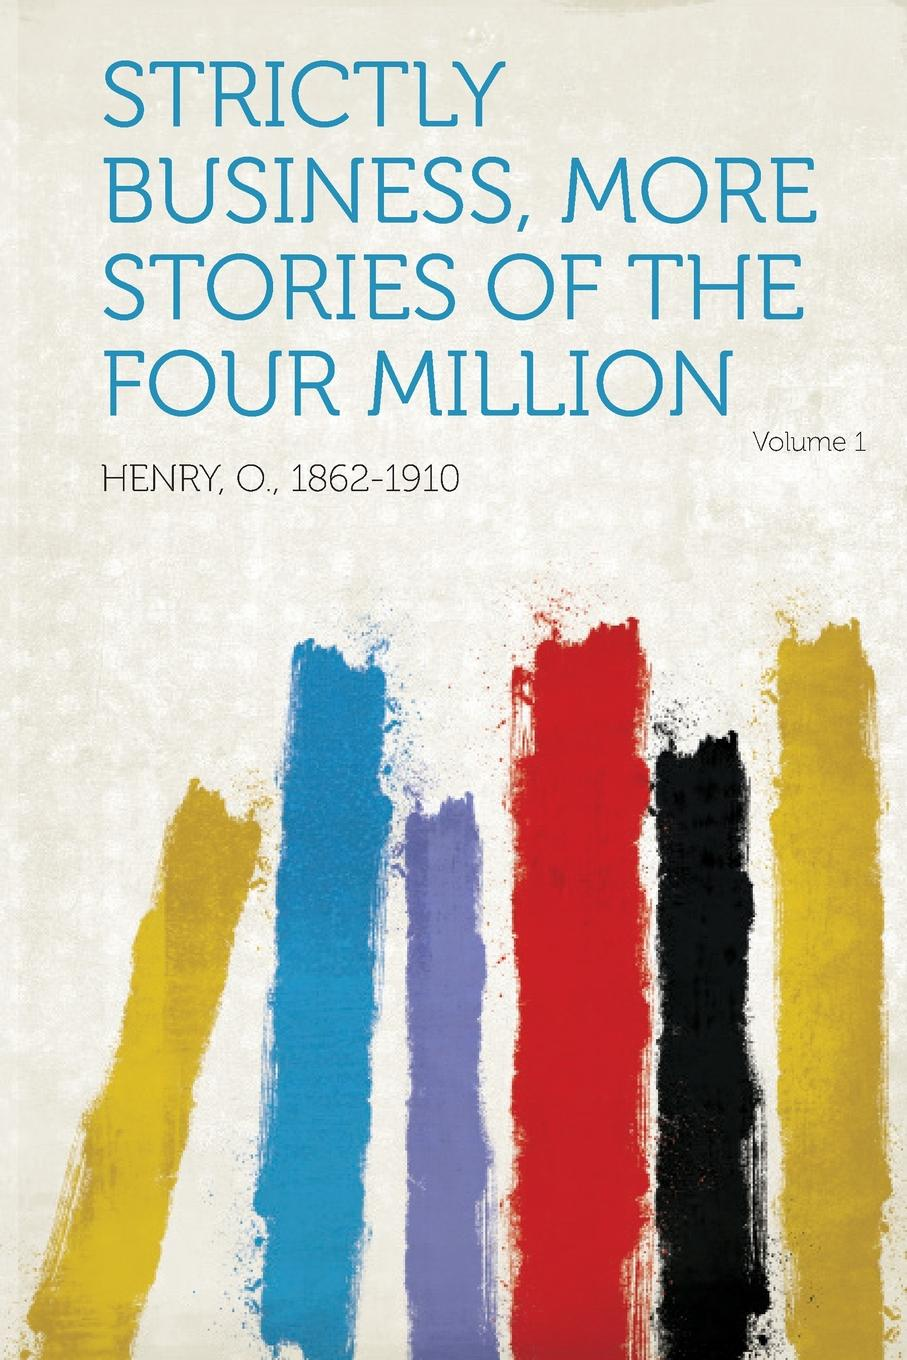 Henry O, Henry O. Strictly Business, More Stories of the Four Million Volume 1